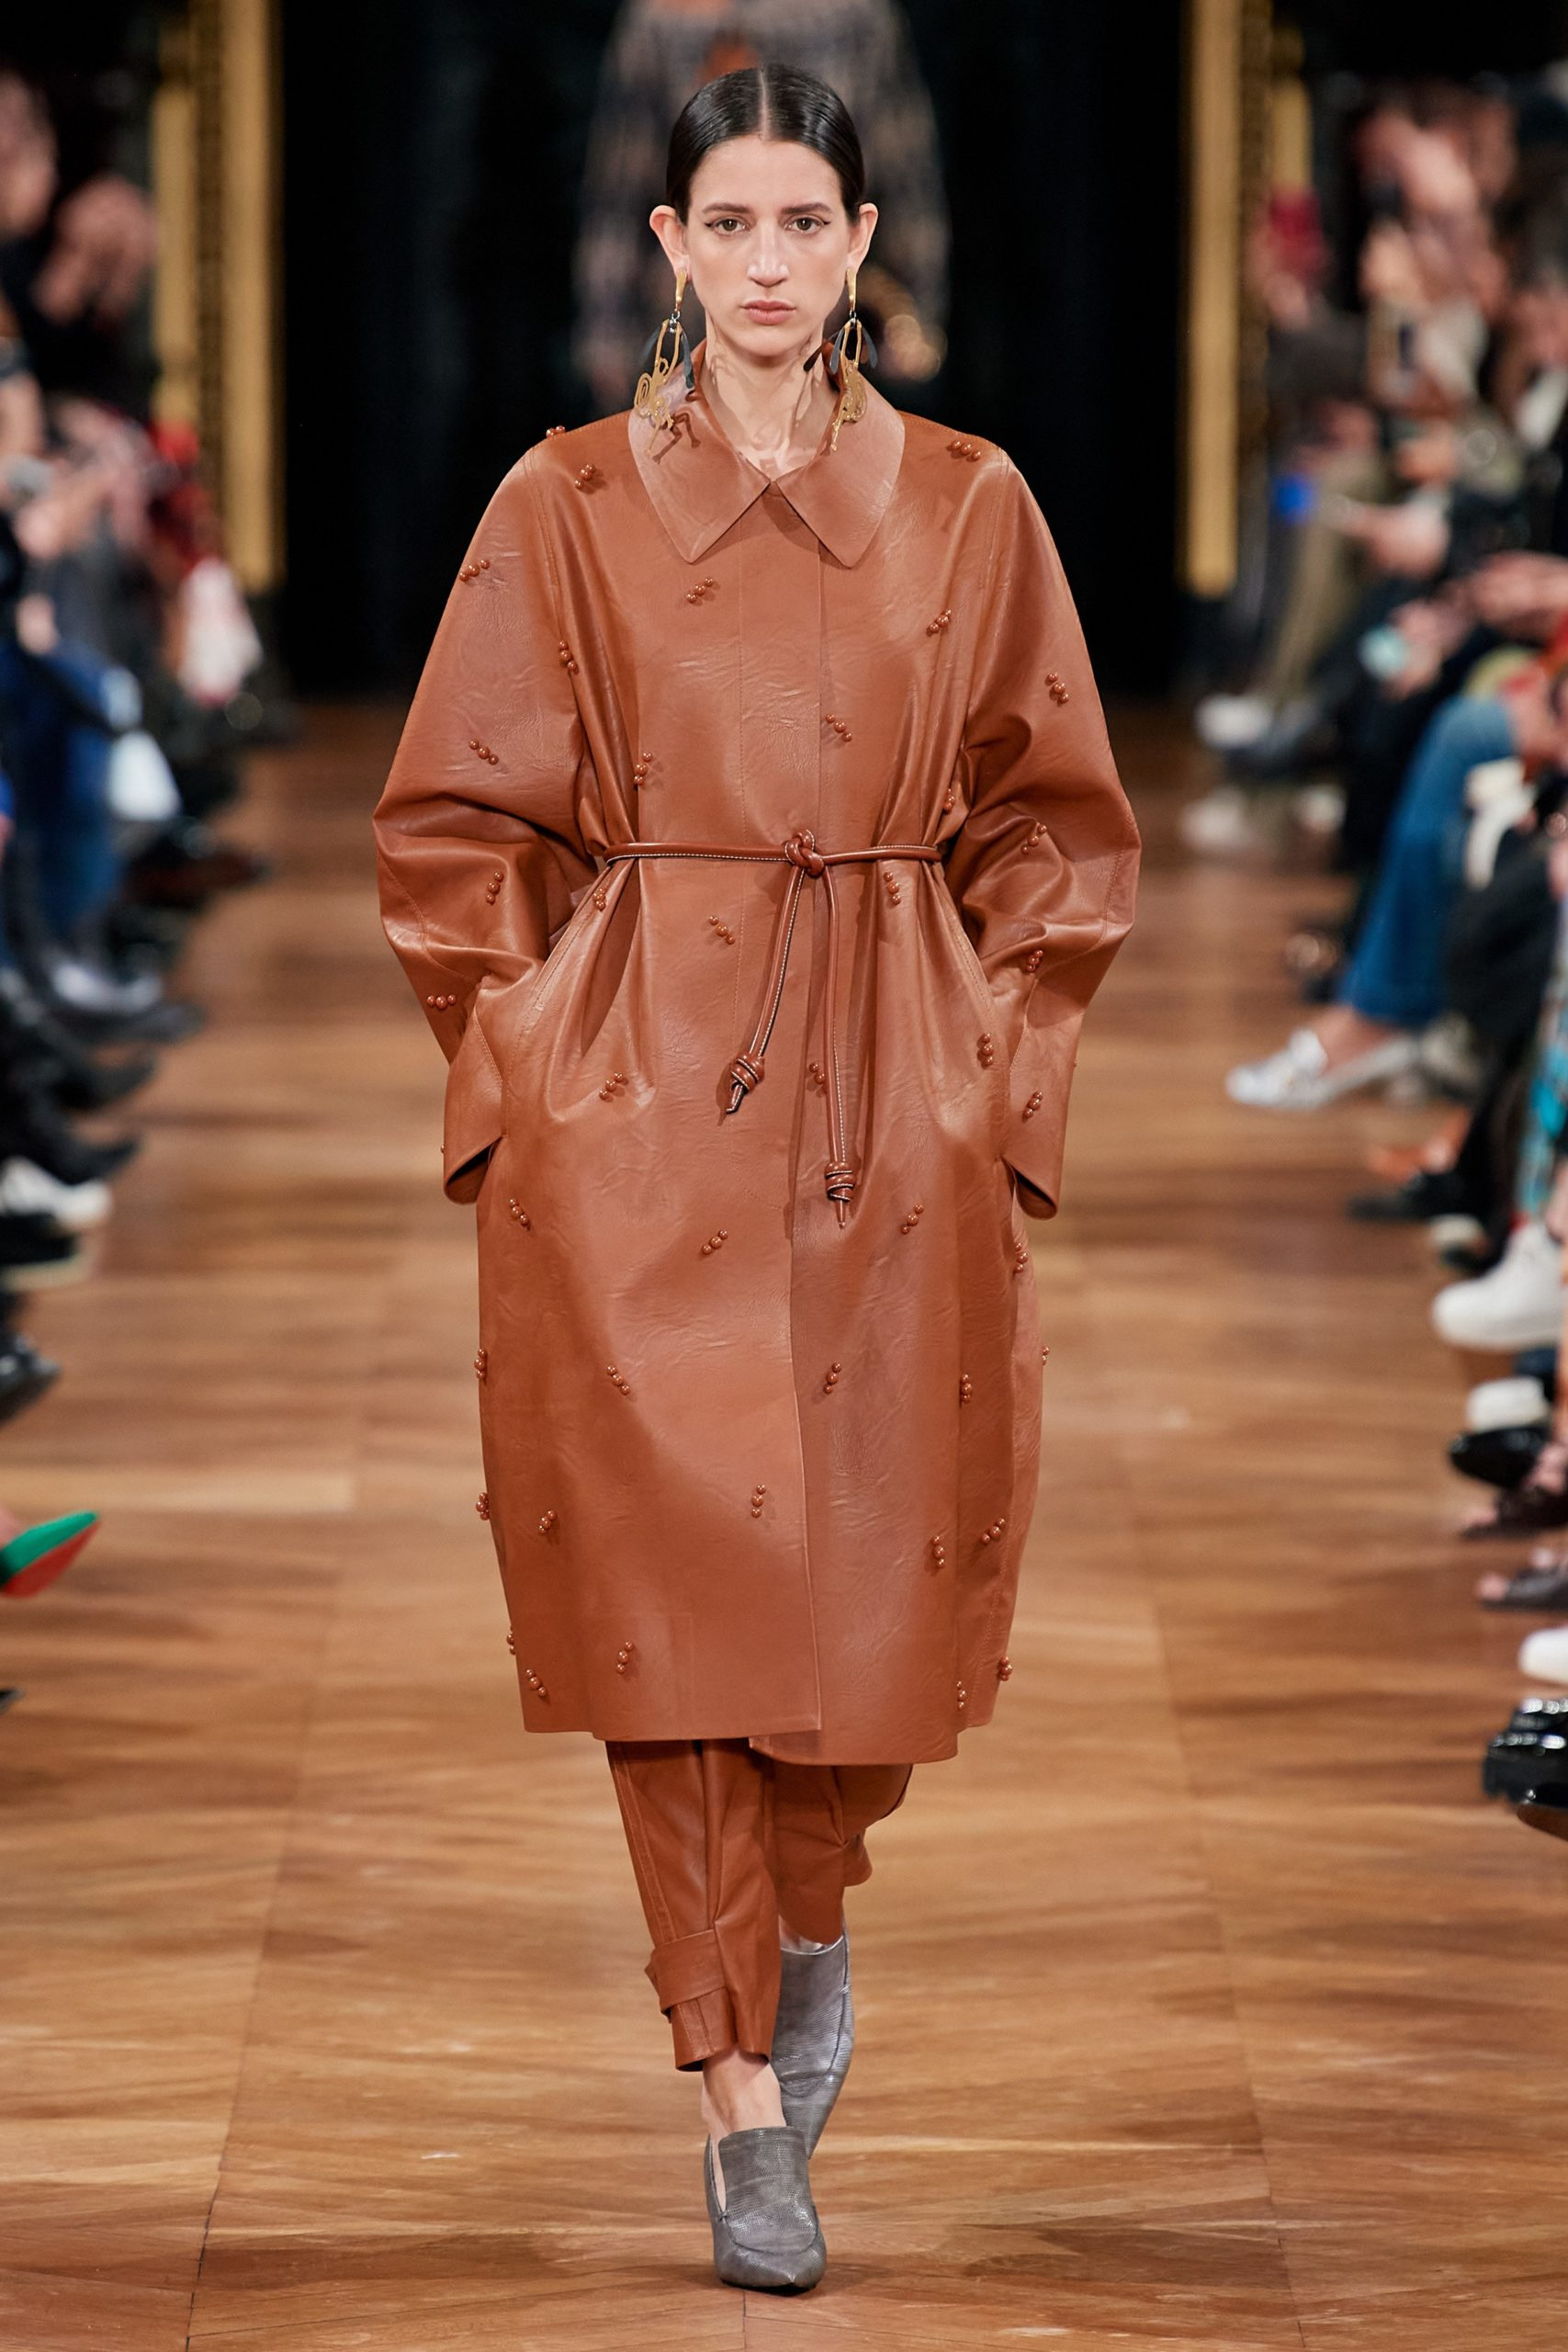 Stella McCartney Fall 2020 trends runway coverage Ready To Wear Vogue caramel monochrome